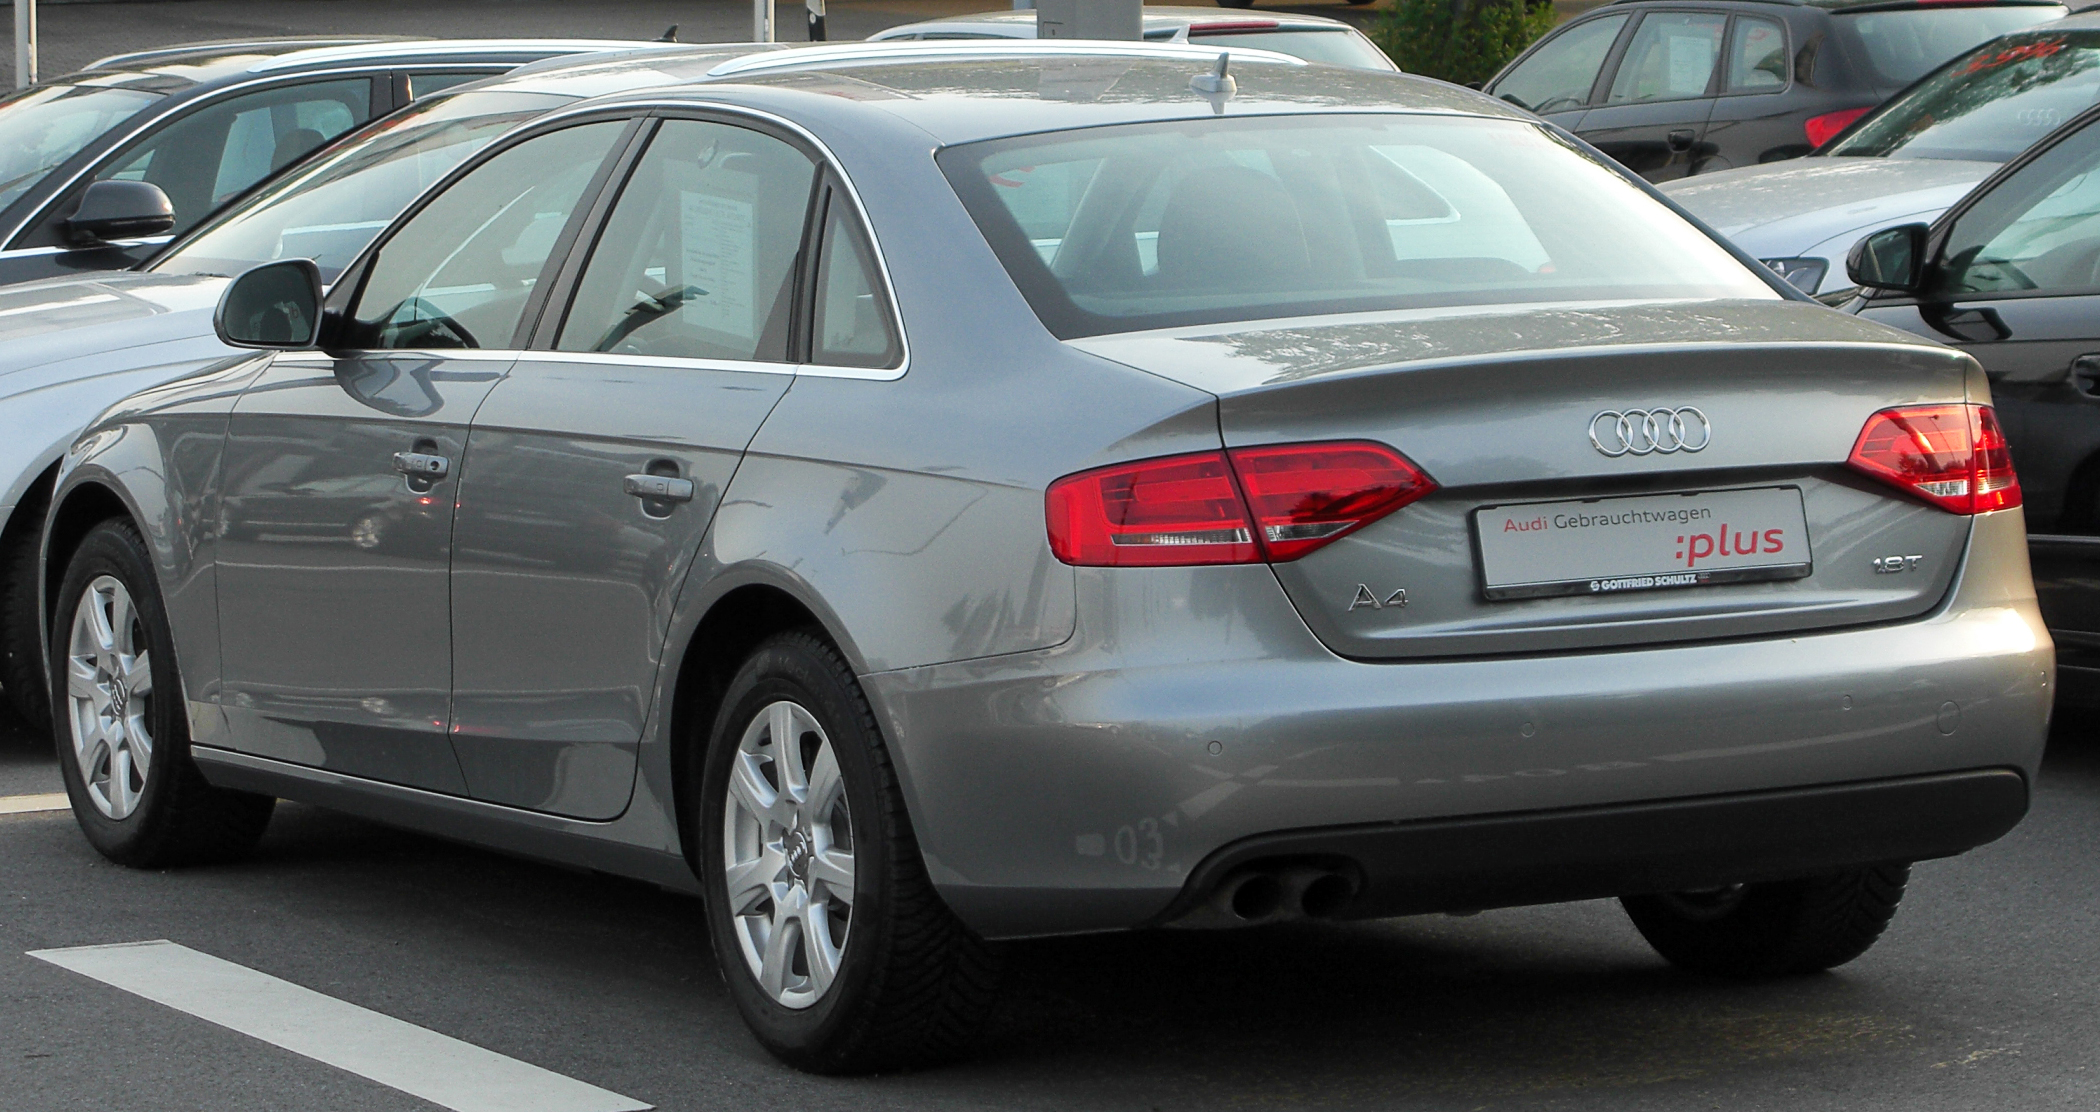 File Audi A4 B8 1 8 Tfsi Rear 20100622 Jpg Wikimedia Commons